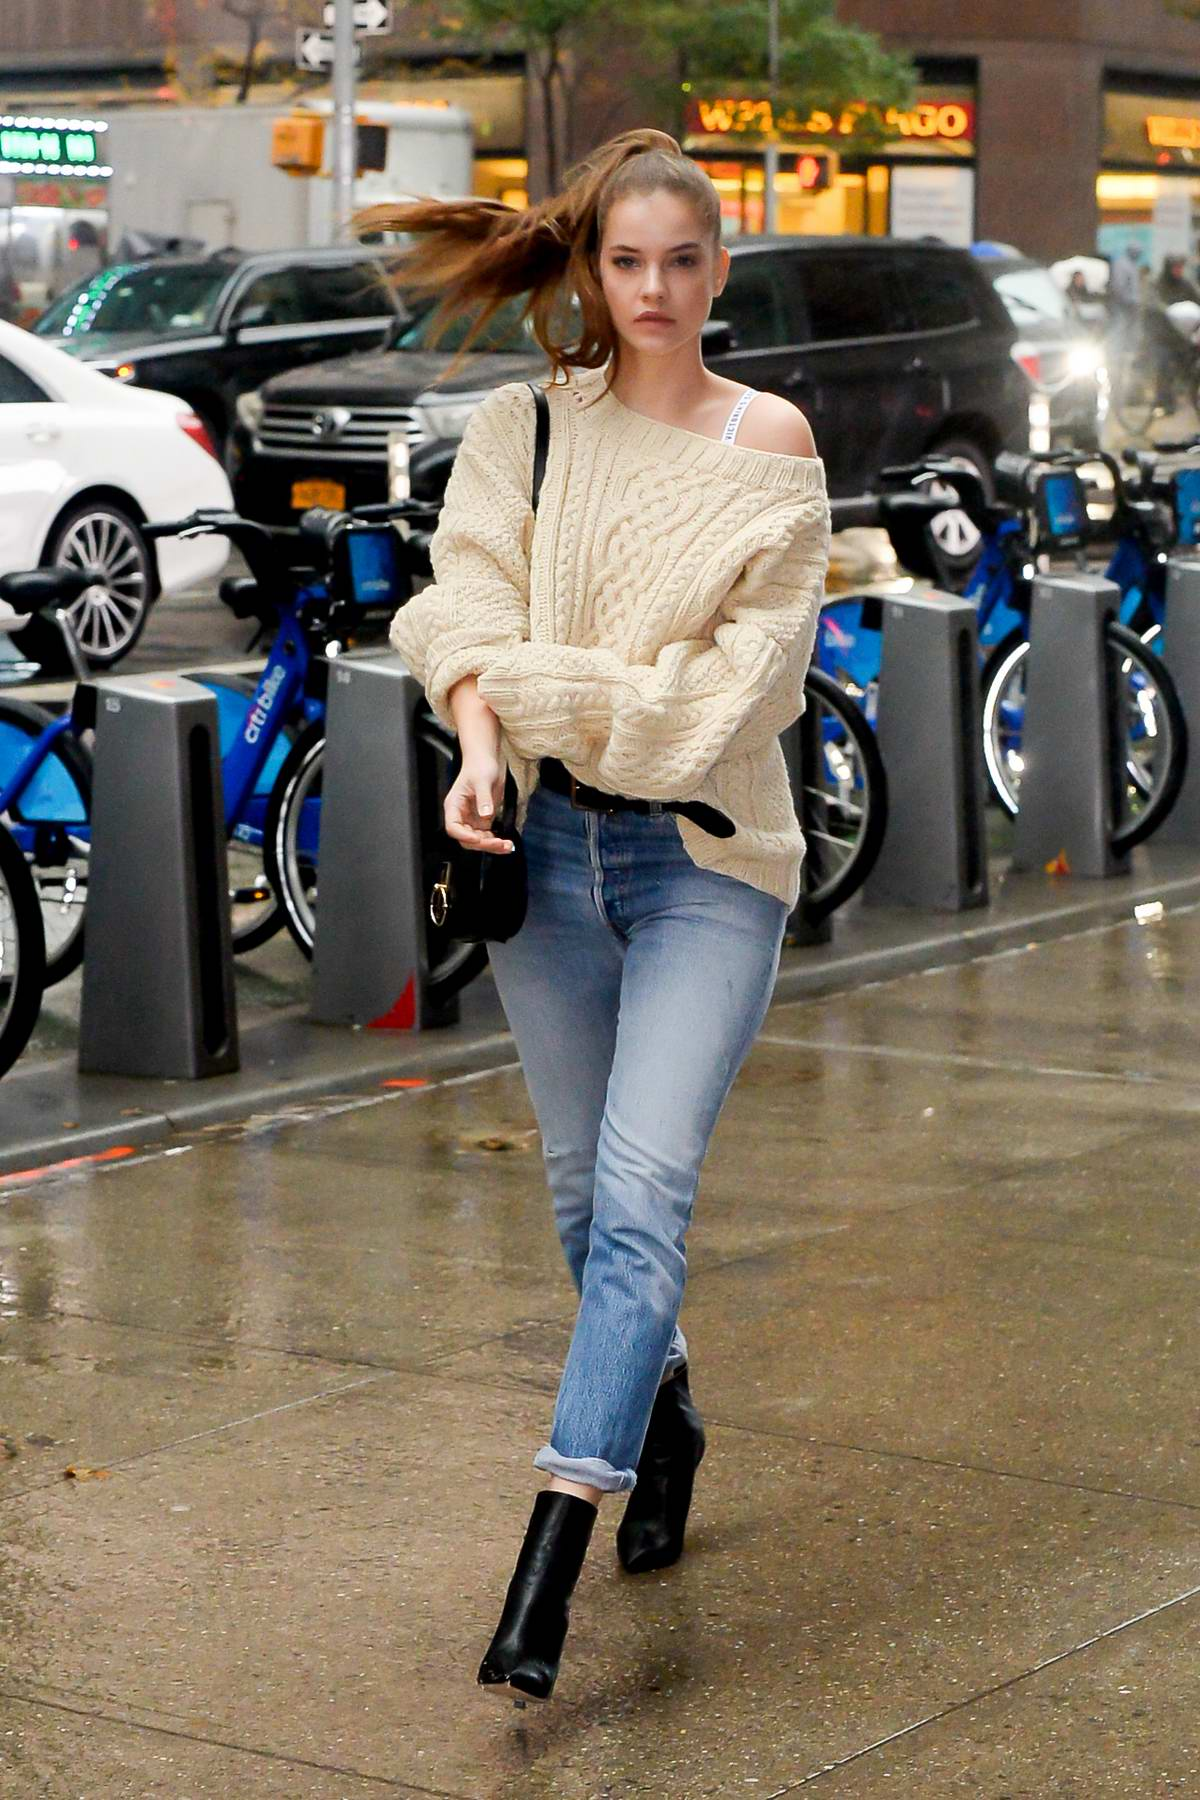 Barbara Palvin Looks Stunning In A Cream Sweater With